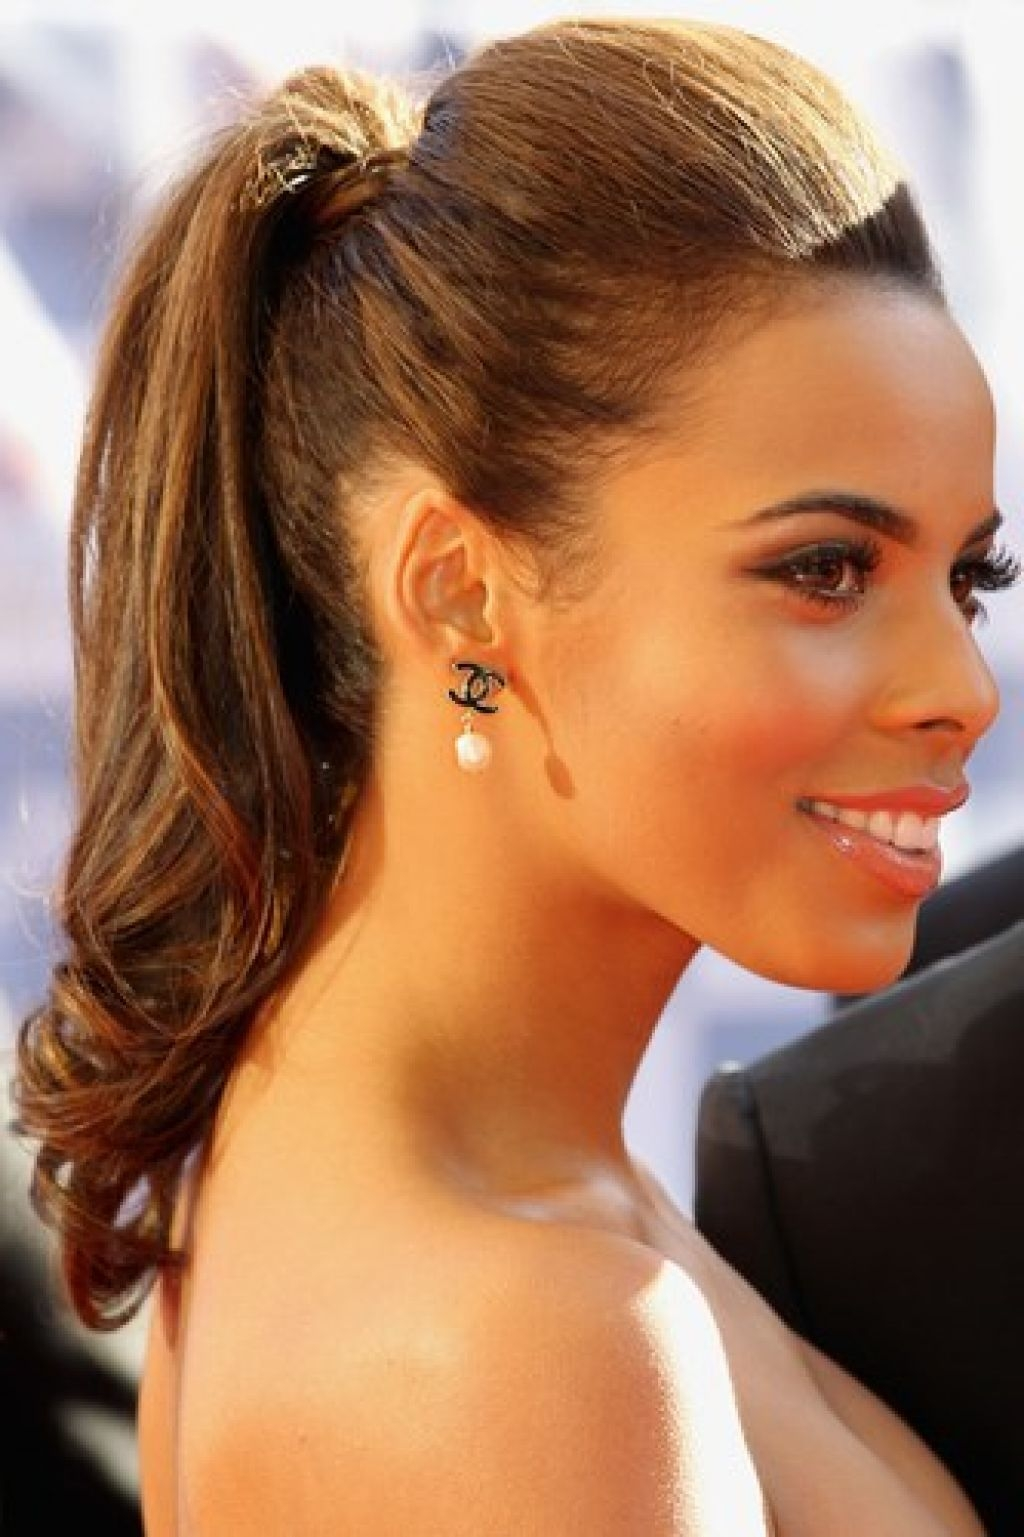 Wedding Hairstyles For Long Hair Pulled To The Side : Peinados recogidos tendencia expo tu boda